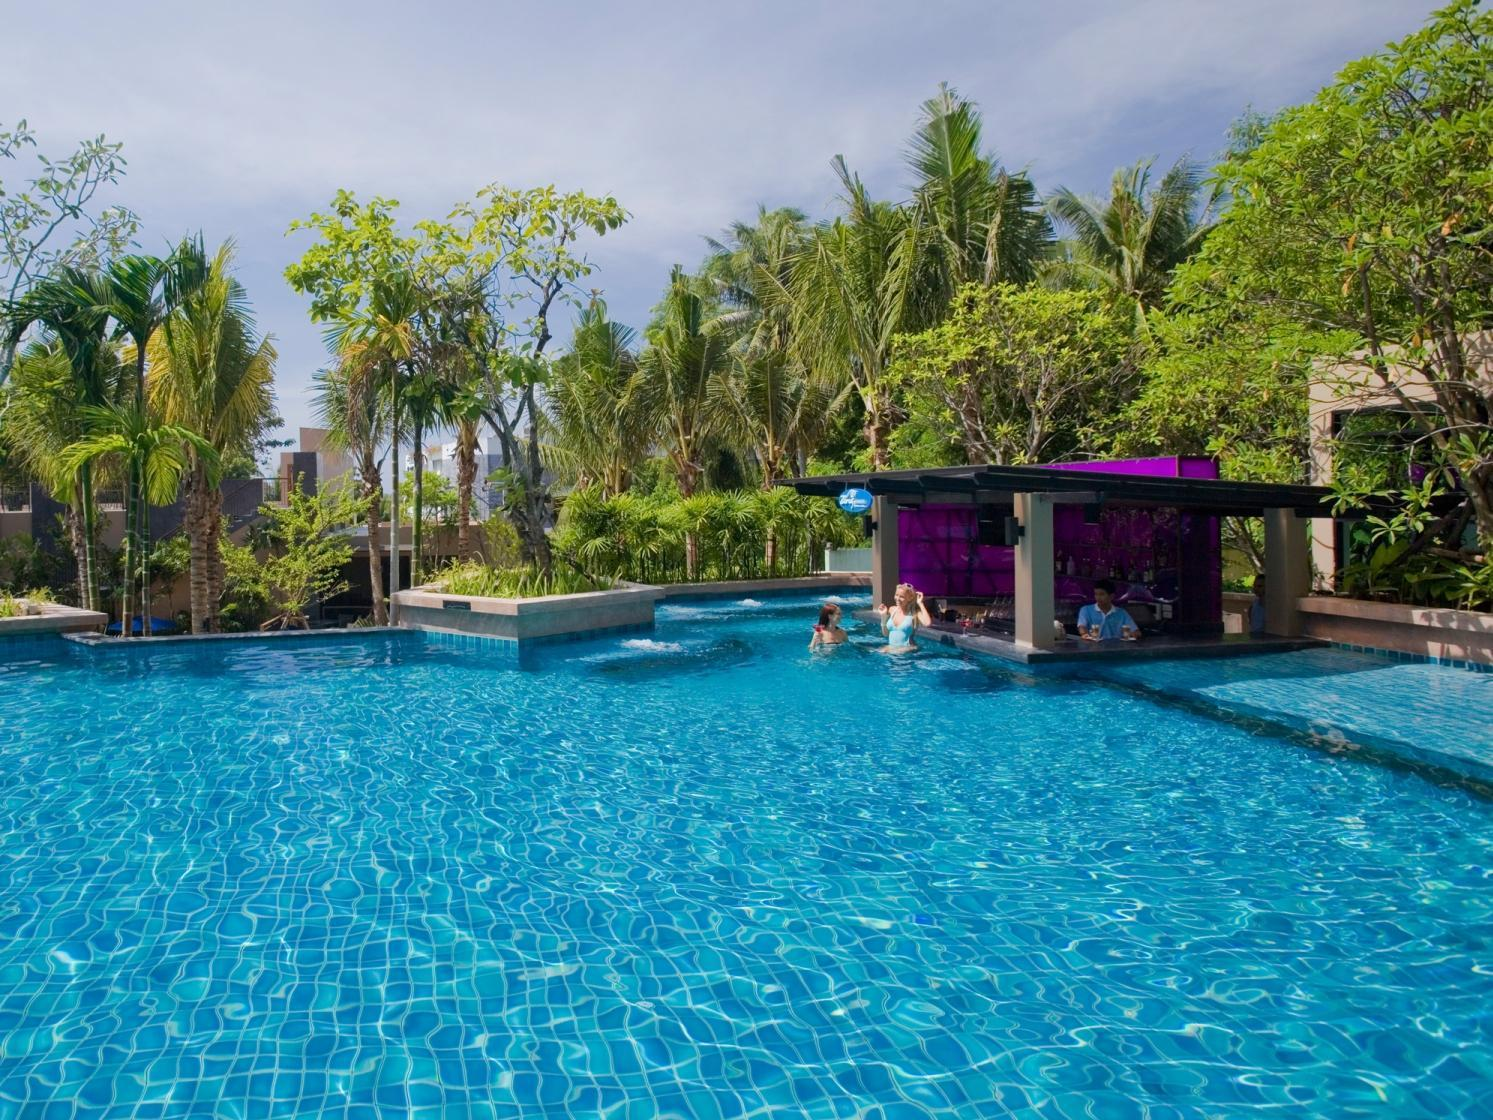 Avista Phuket Resort & Spa, Kata Beach 푸켓